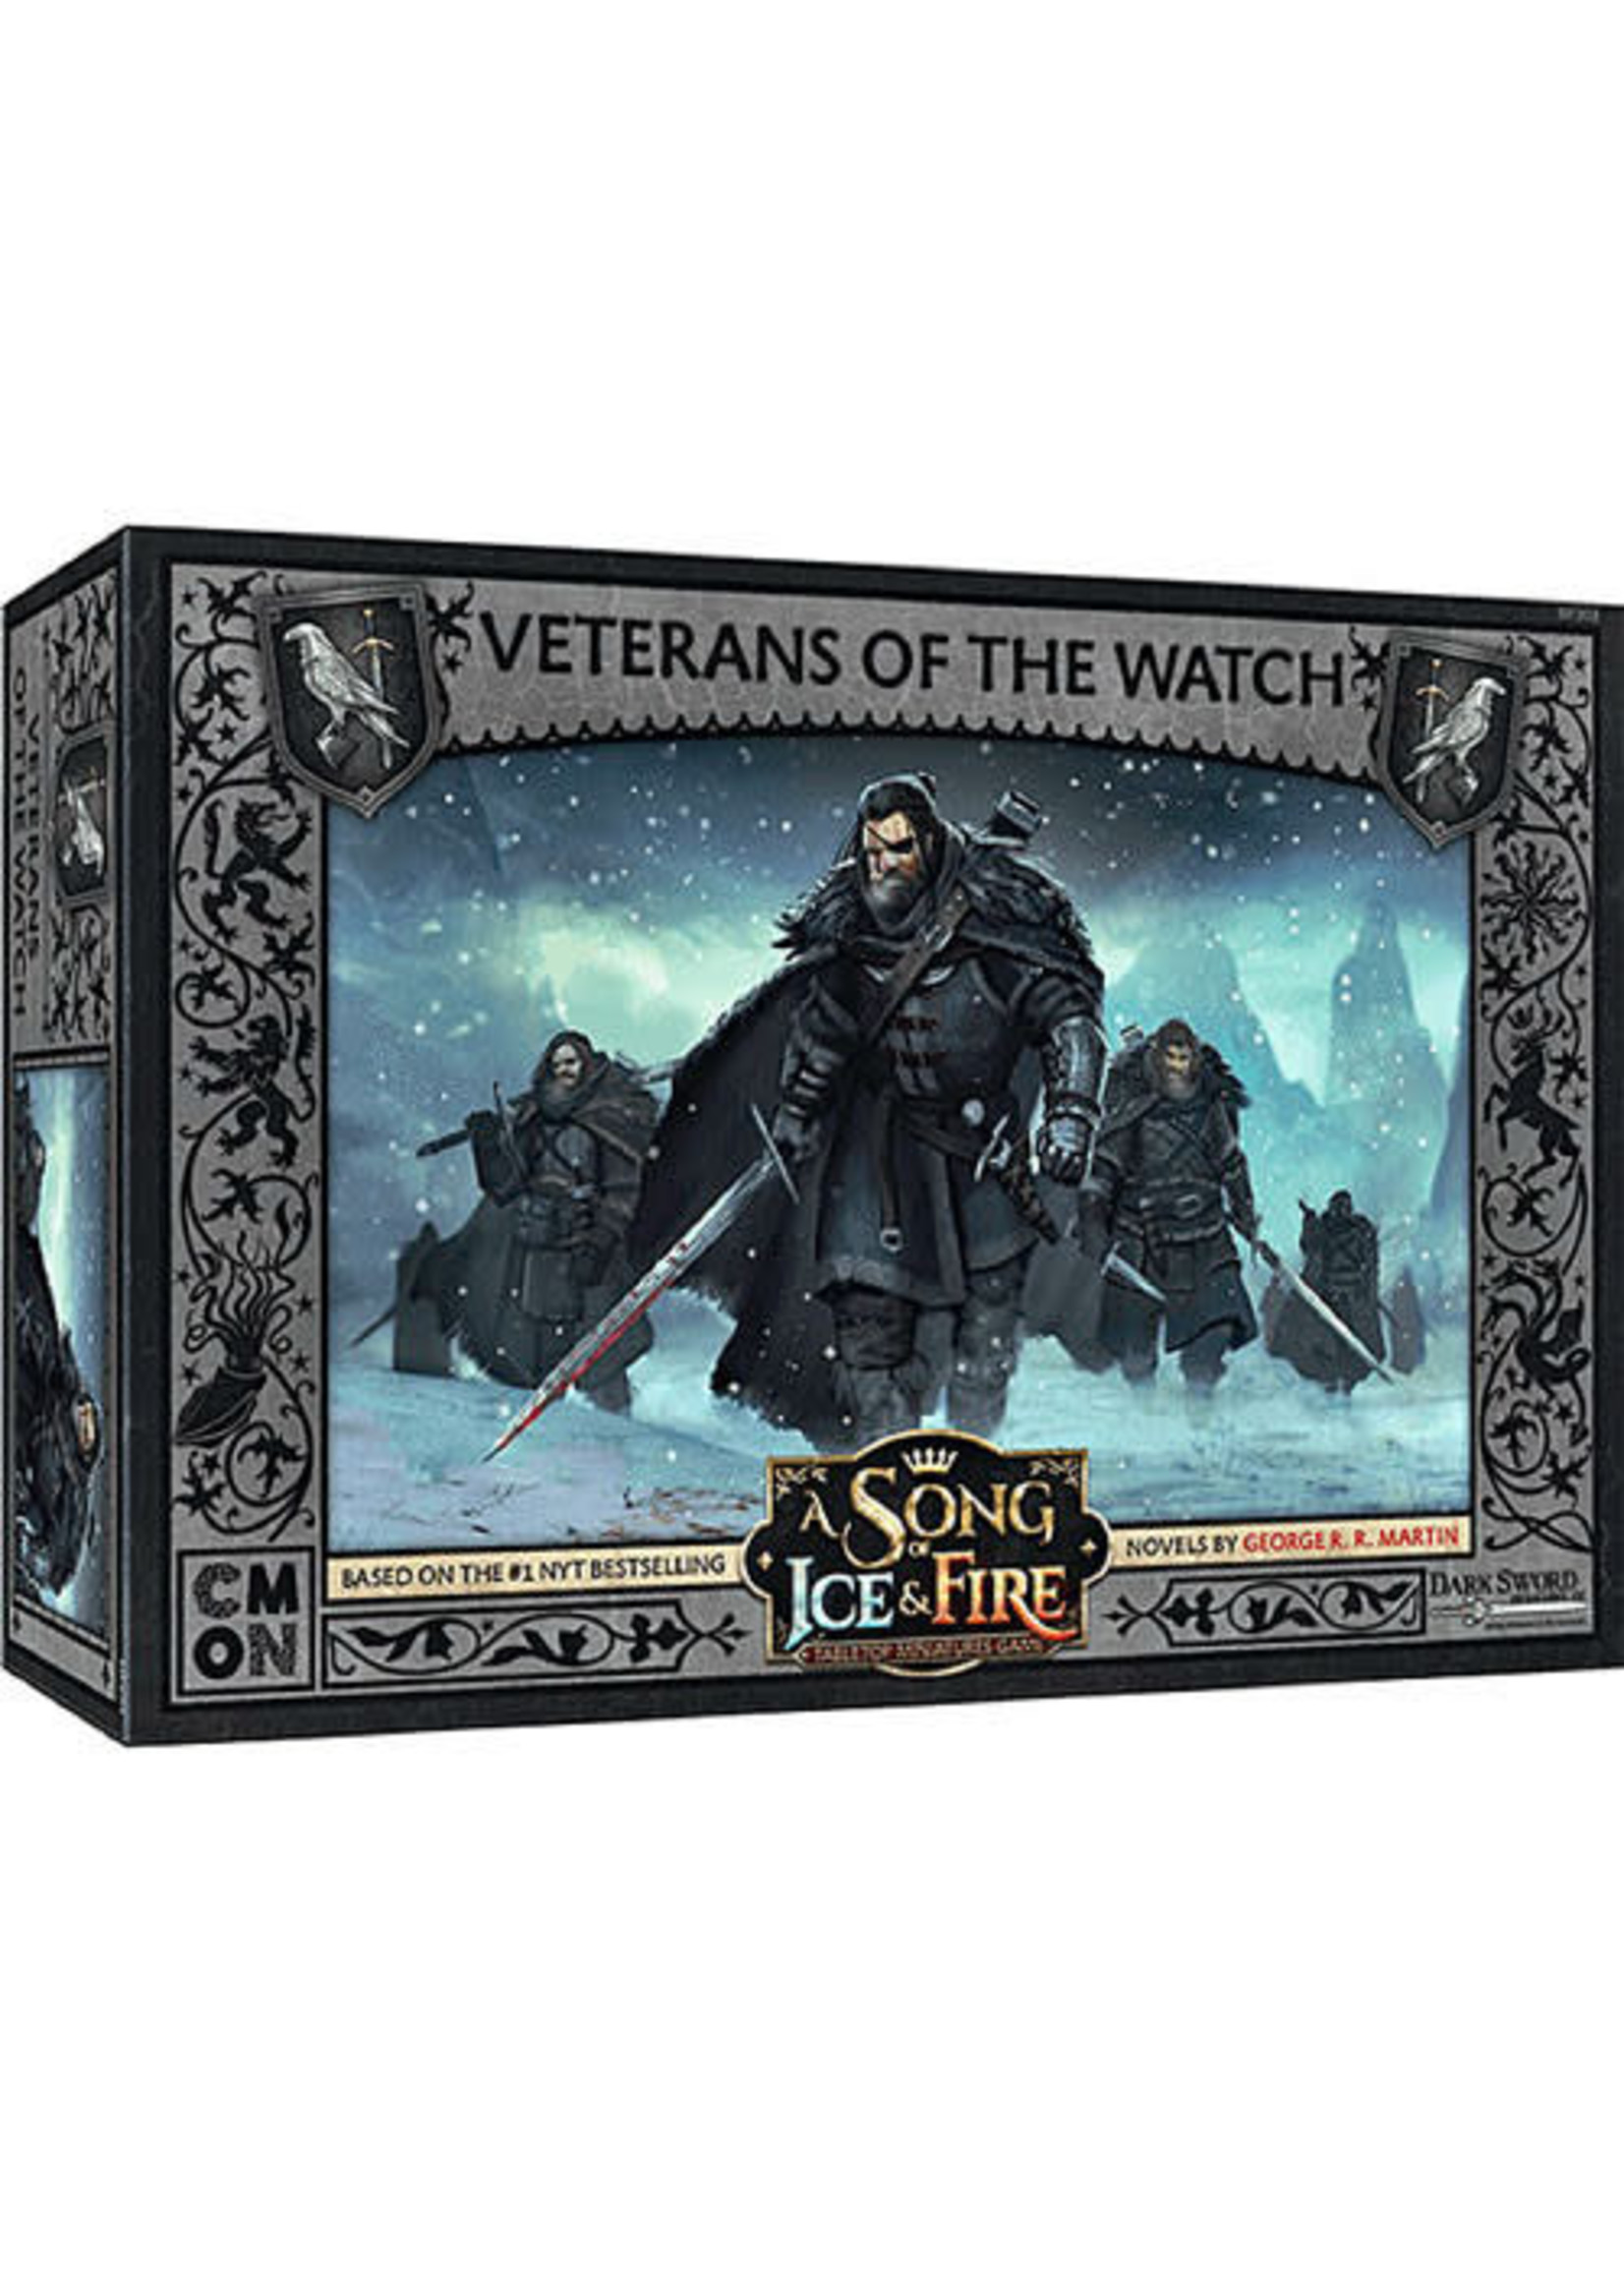 A Song of Fire and Ice: Veterans of the Watch Unit Box